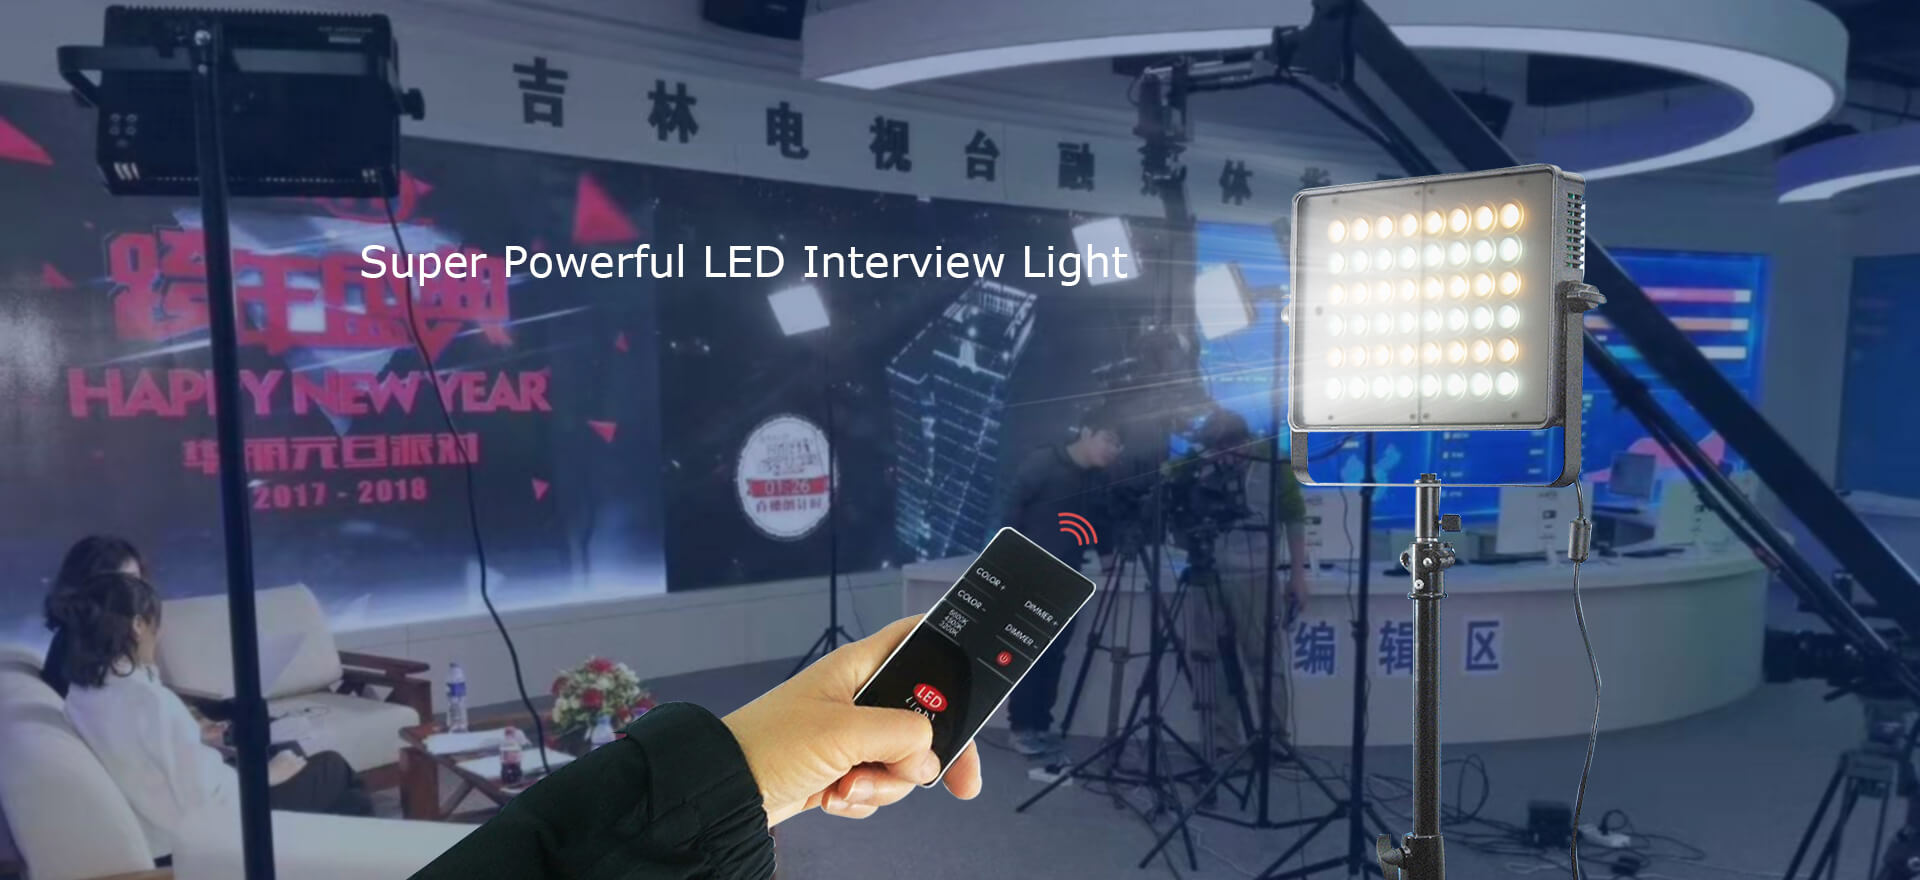 Super powerful high-power LED Video Lighting for interview